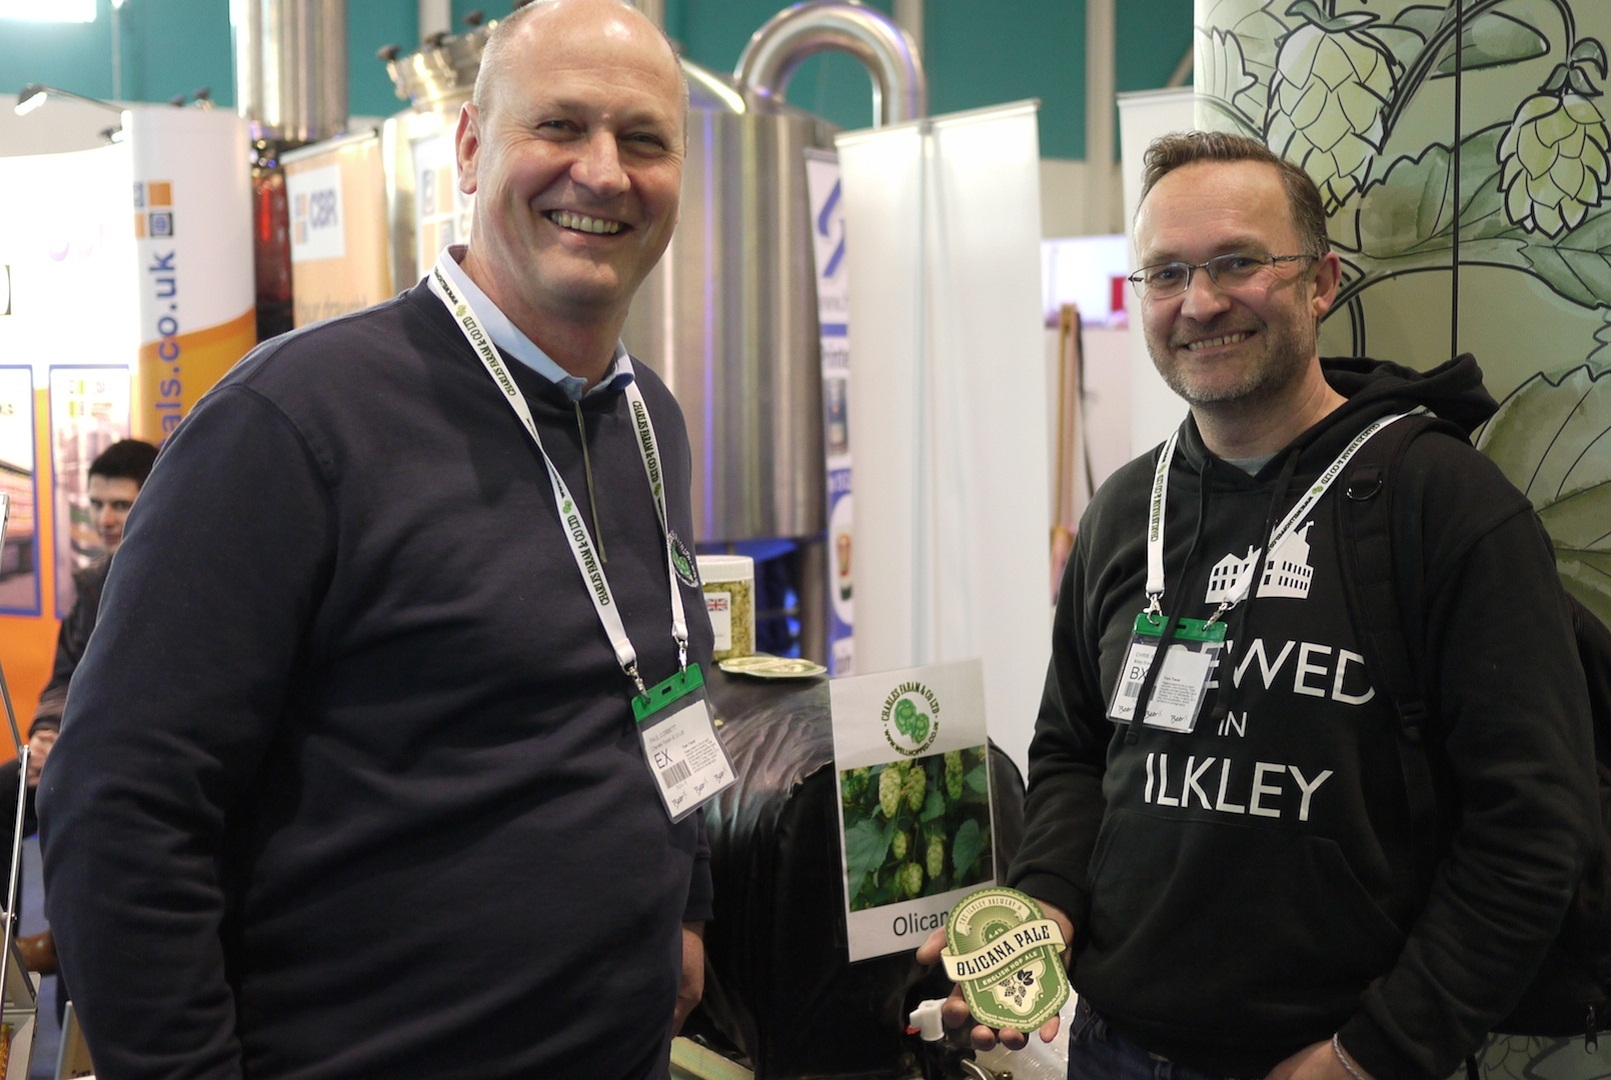 Paul Corbett, of Charles Faram and Co hop merchants, with Chris Ives, managing director of Ilkley